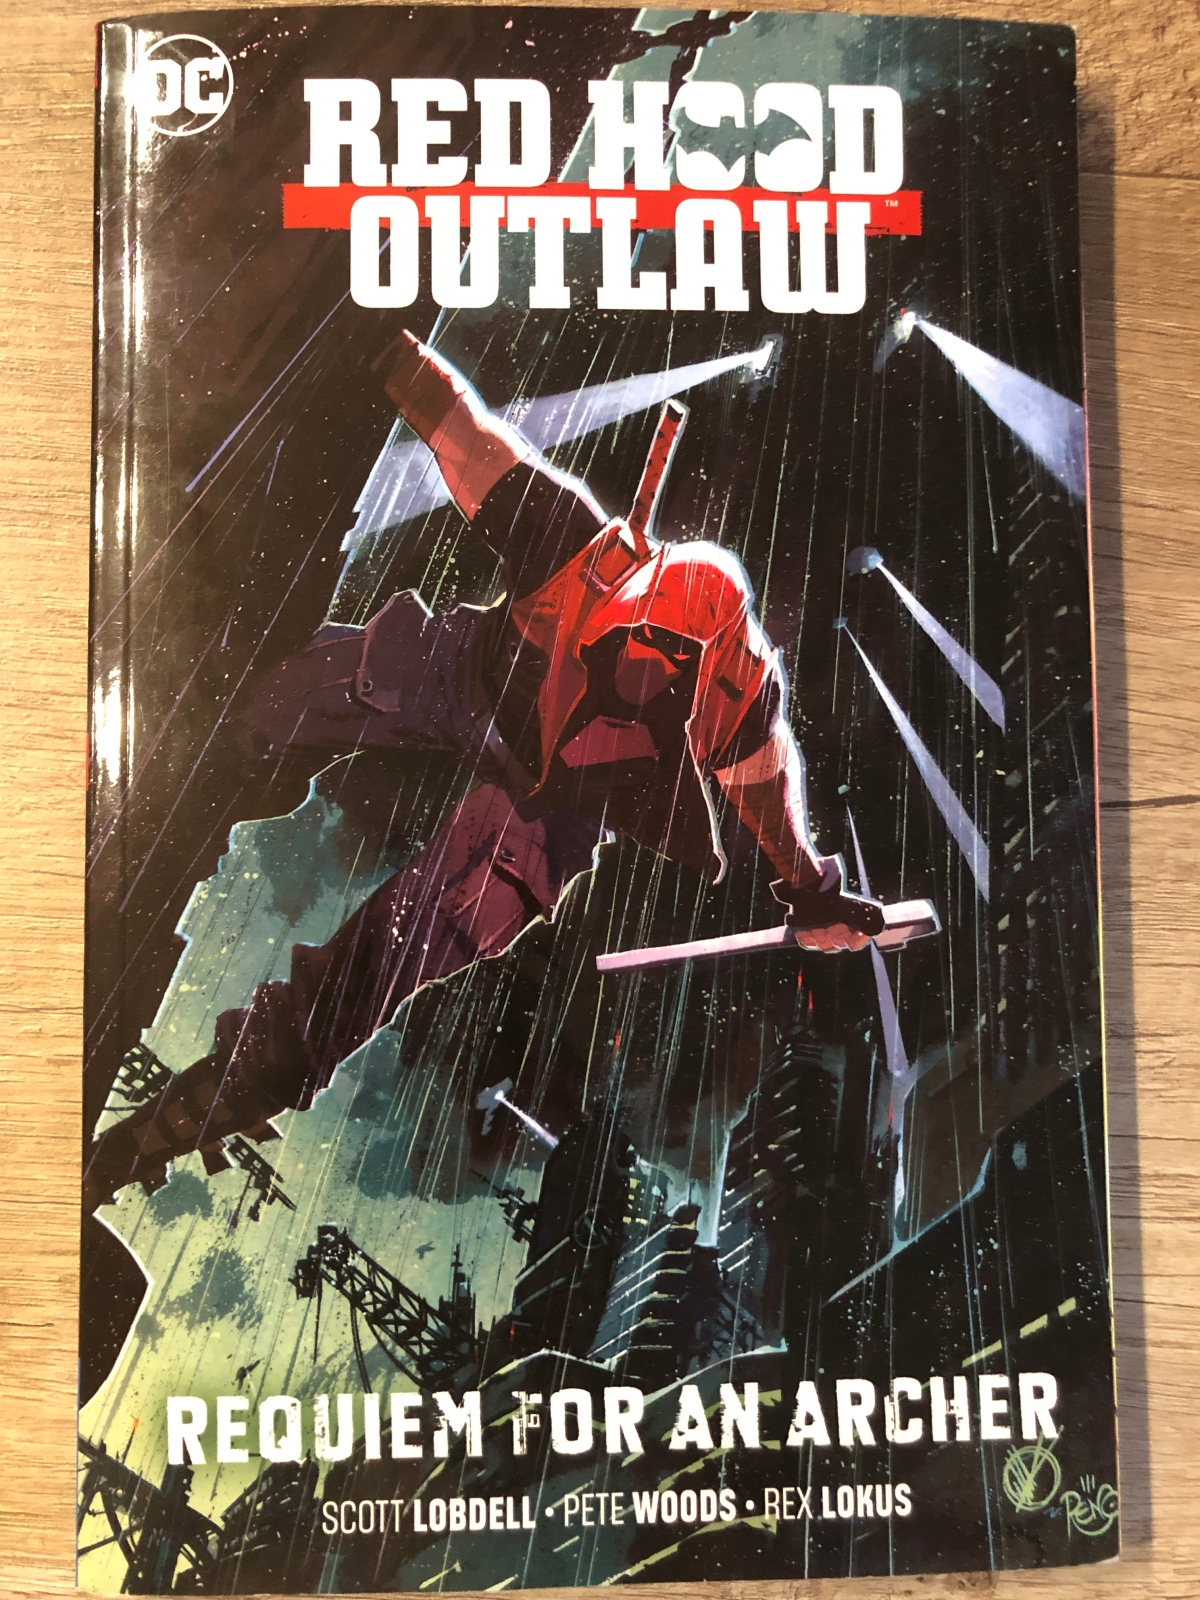 Red Hood, Outlaw Vol. 1: Requiem for an Archer |Review